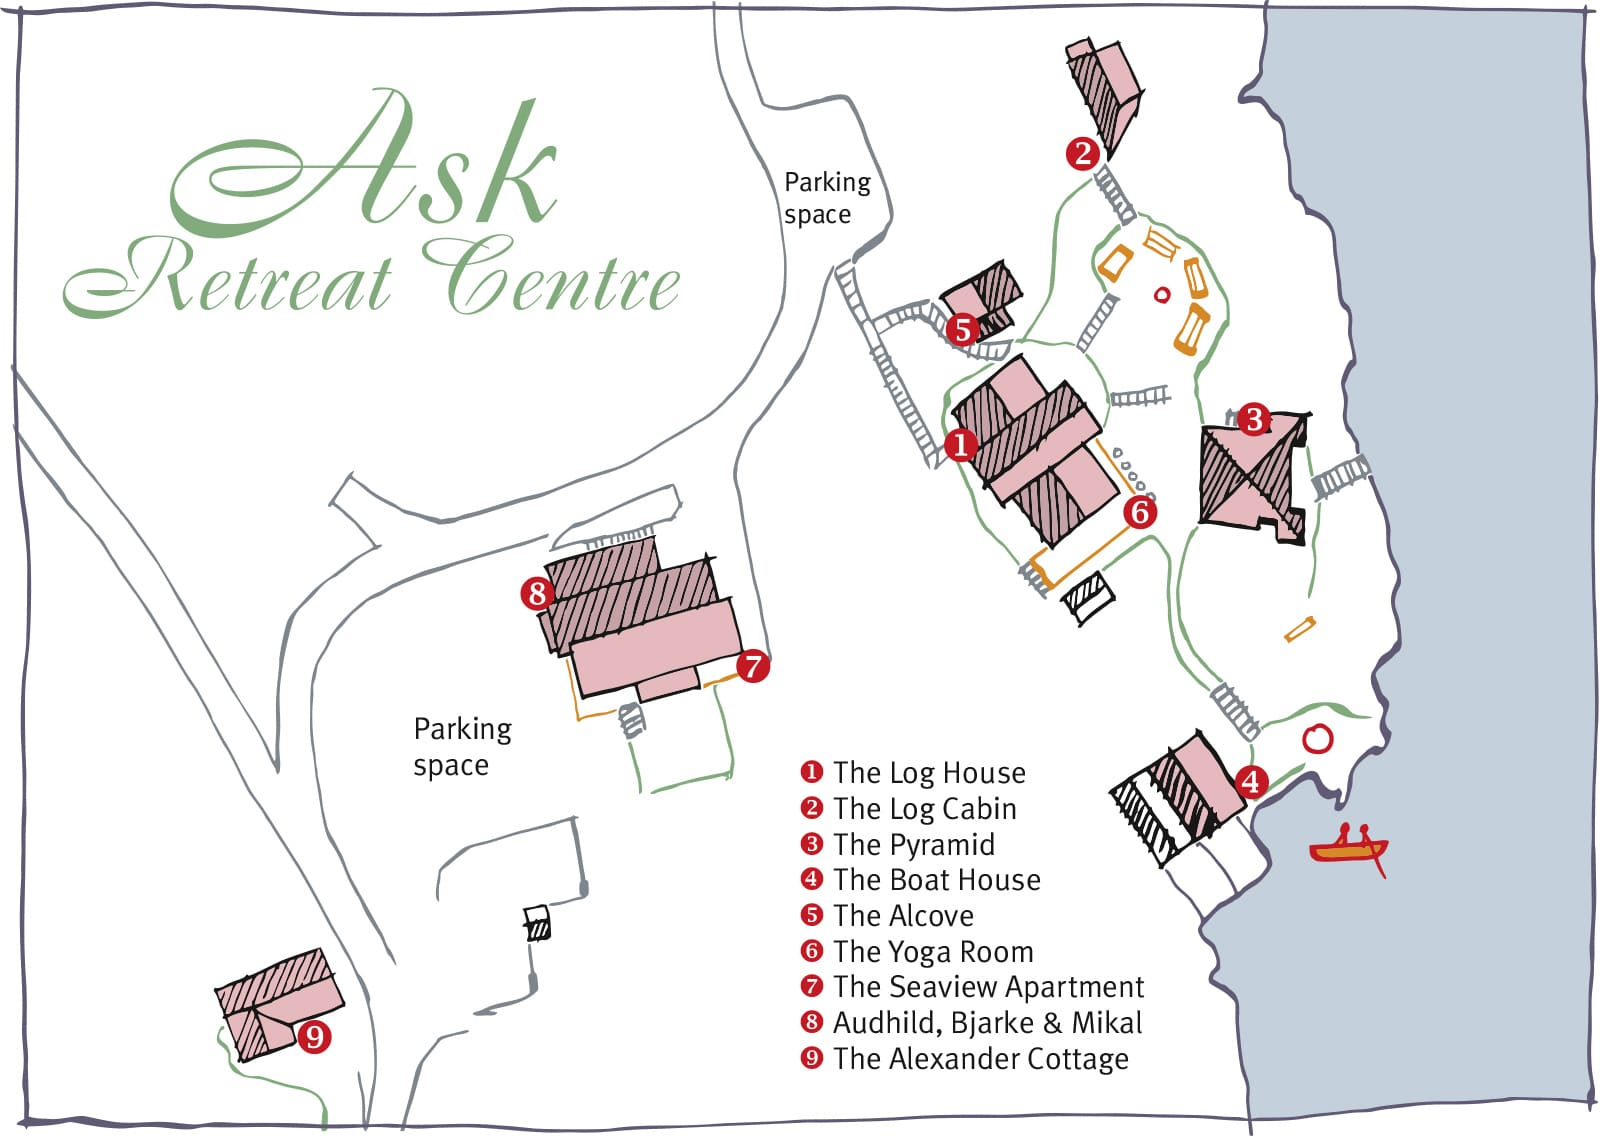 Map of Ask Retreat Centre